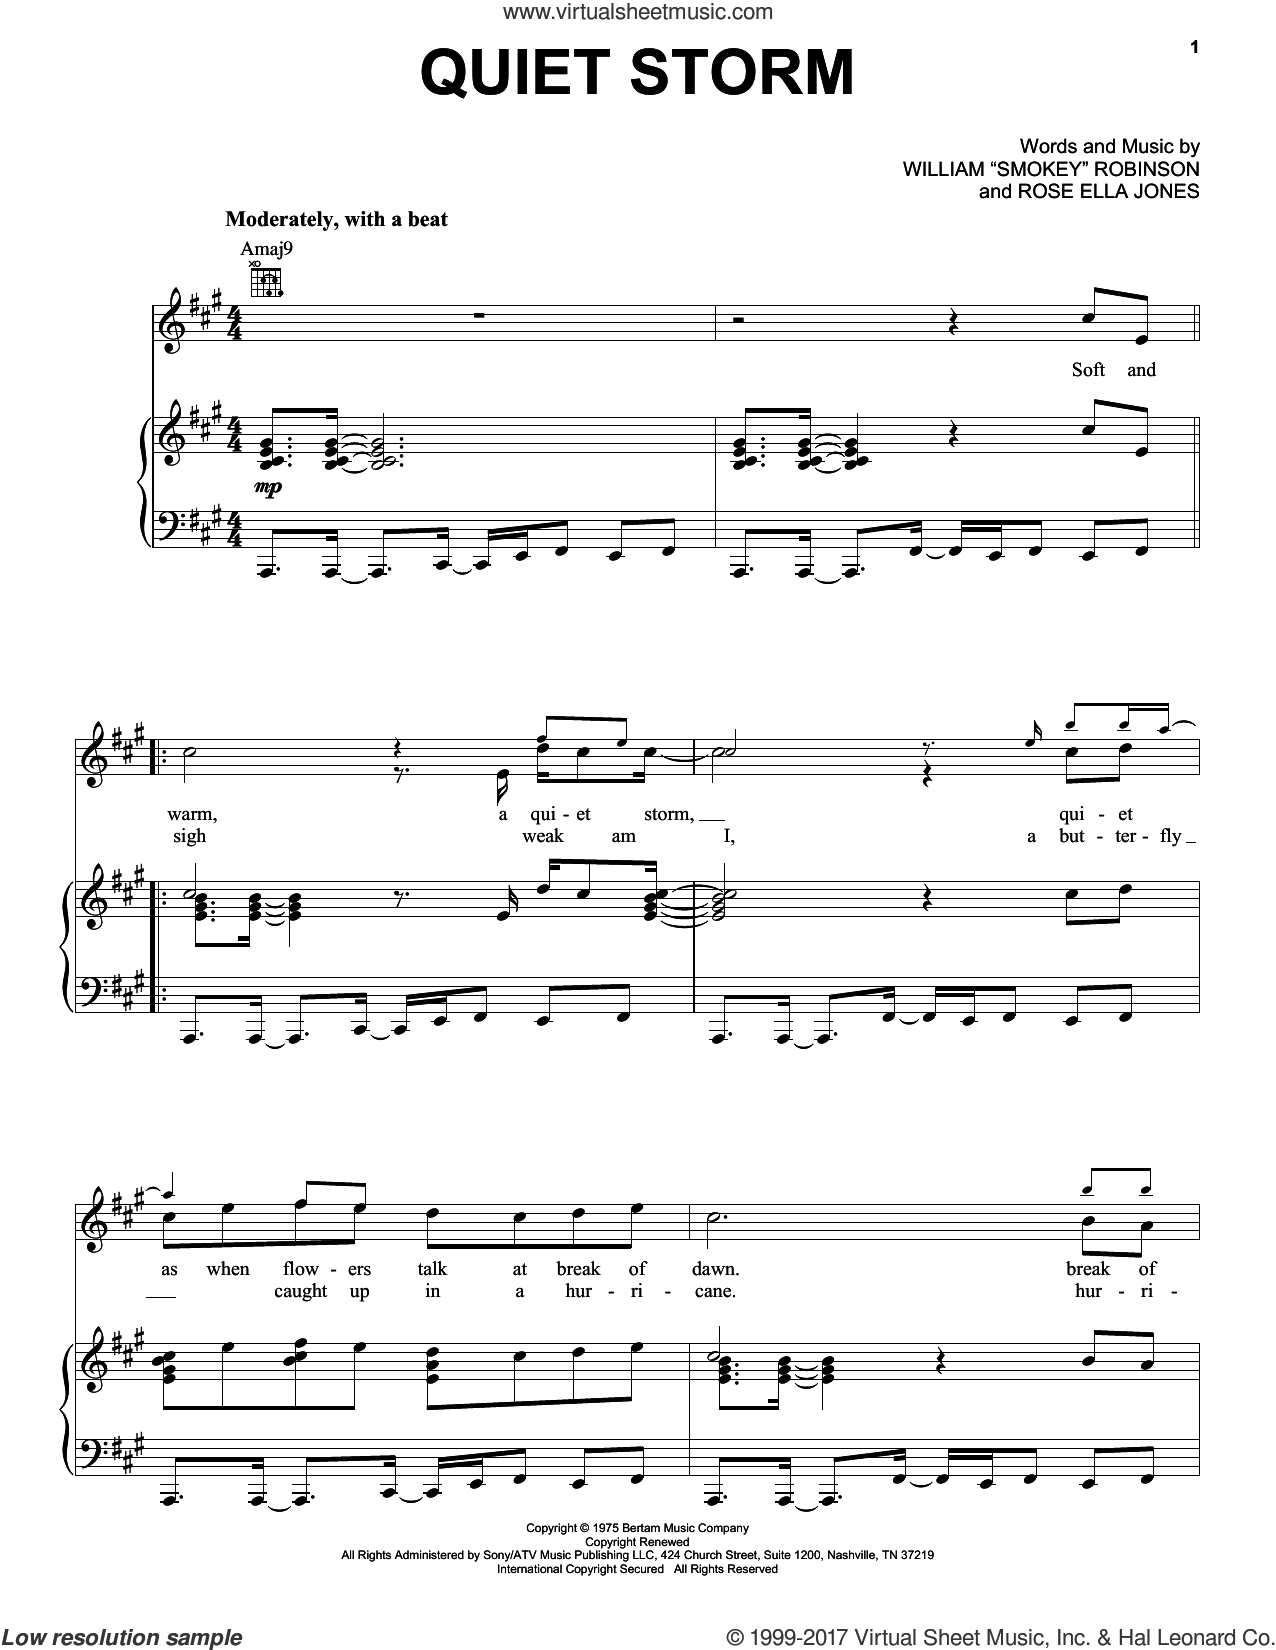 Quiet Storm sheet music for voice, piano or guitar by William 'Smokey' Robinson and Rose Ella Jones, intermediate skill level